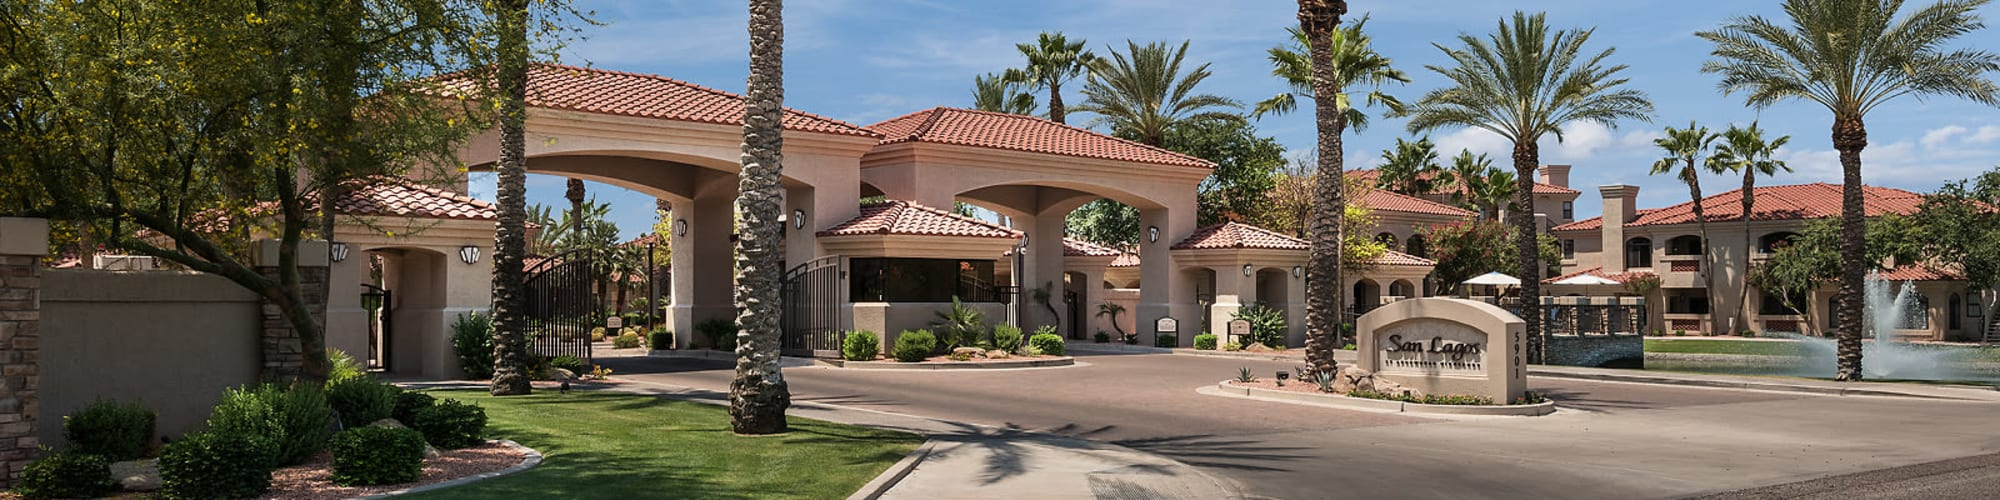 Virtual tour of San Lagos in Glendale, Arizona